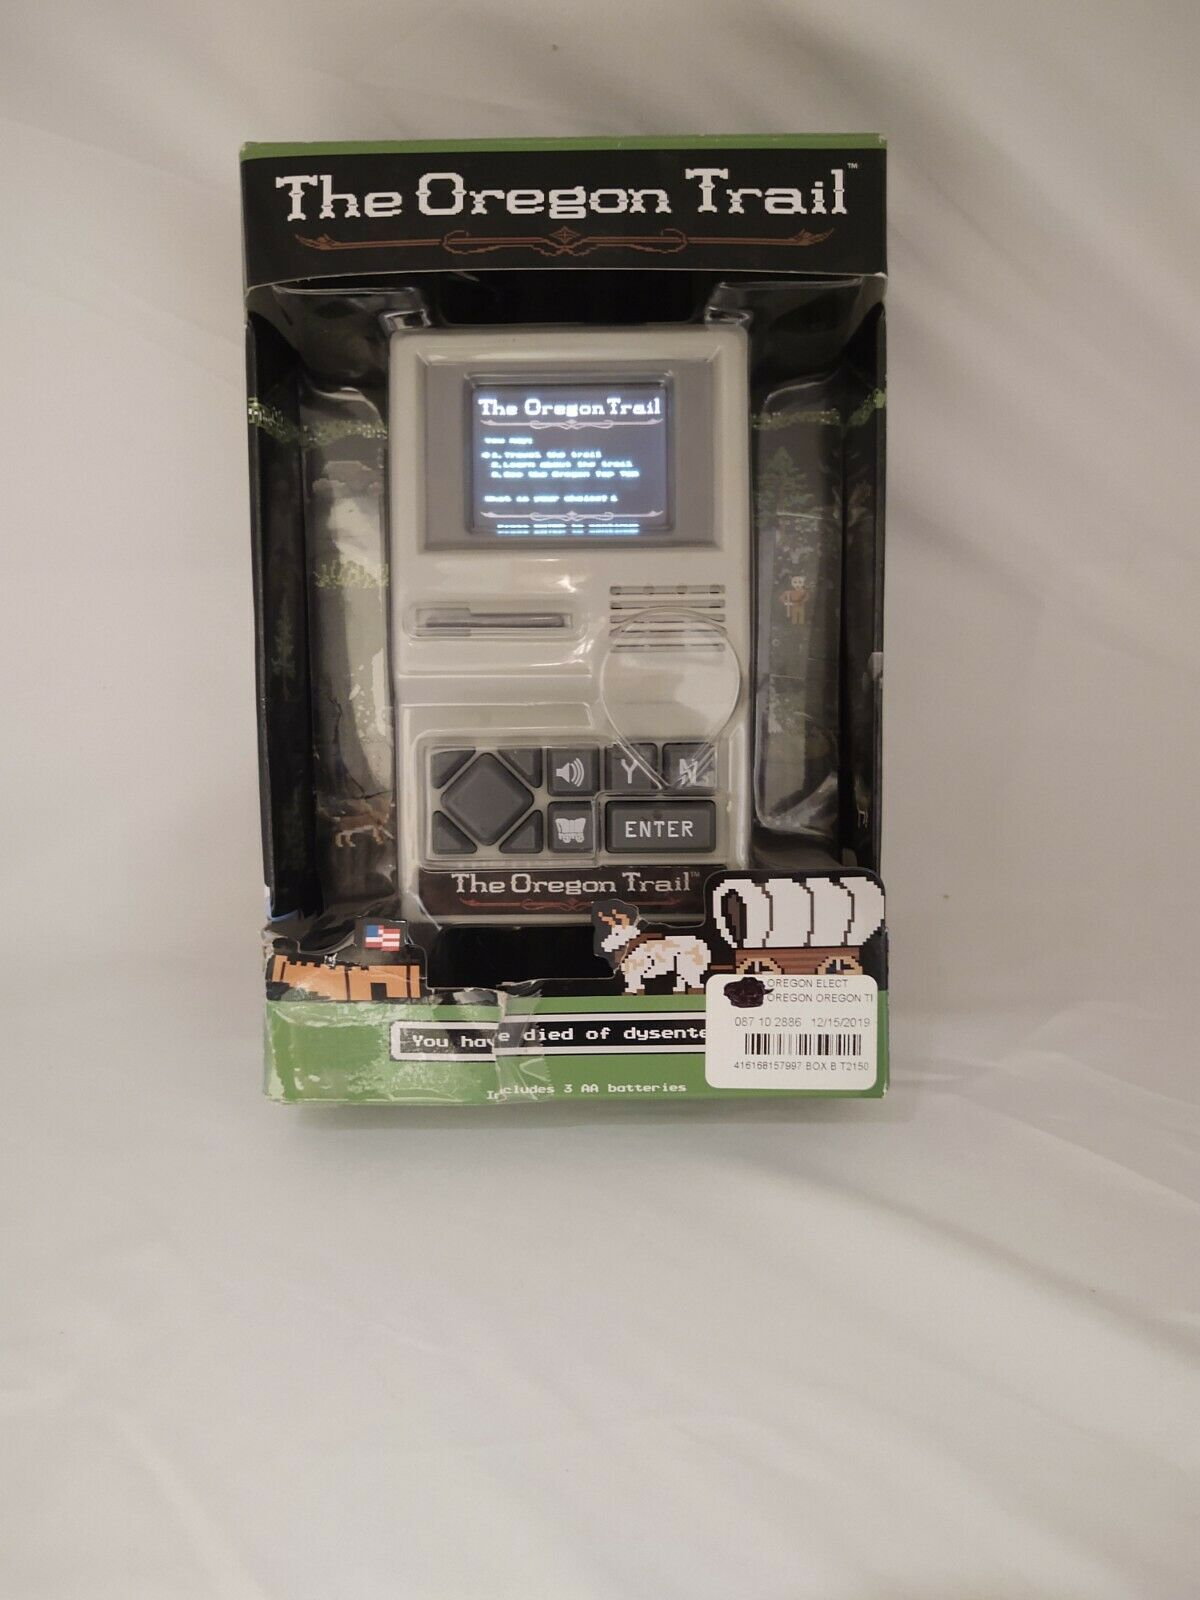 The Oregon Trail Handheld Classic Computer Game 2017 Color screen - TESTED WORKS